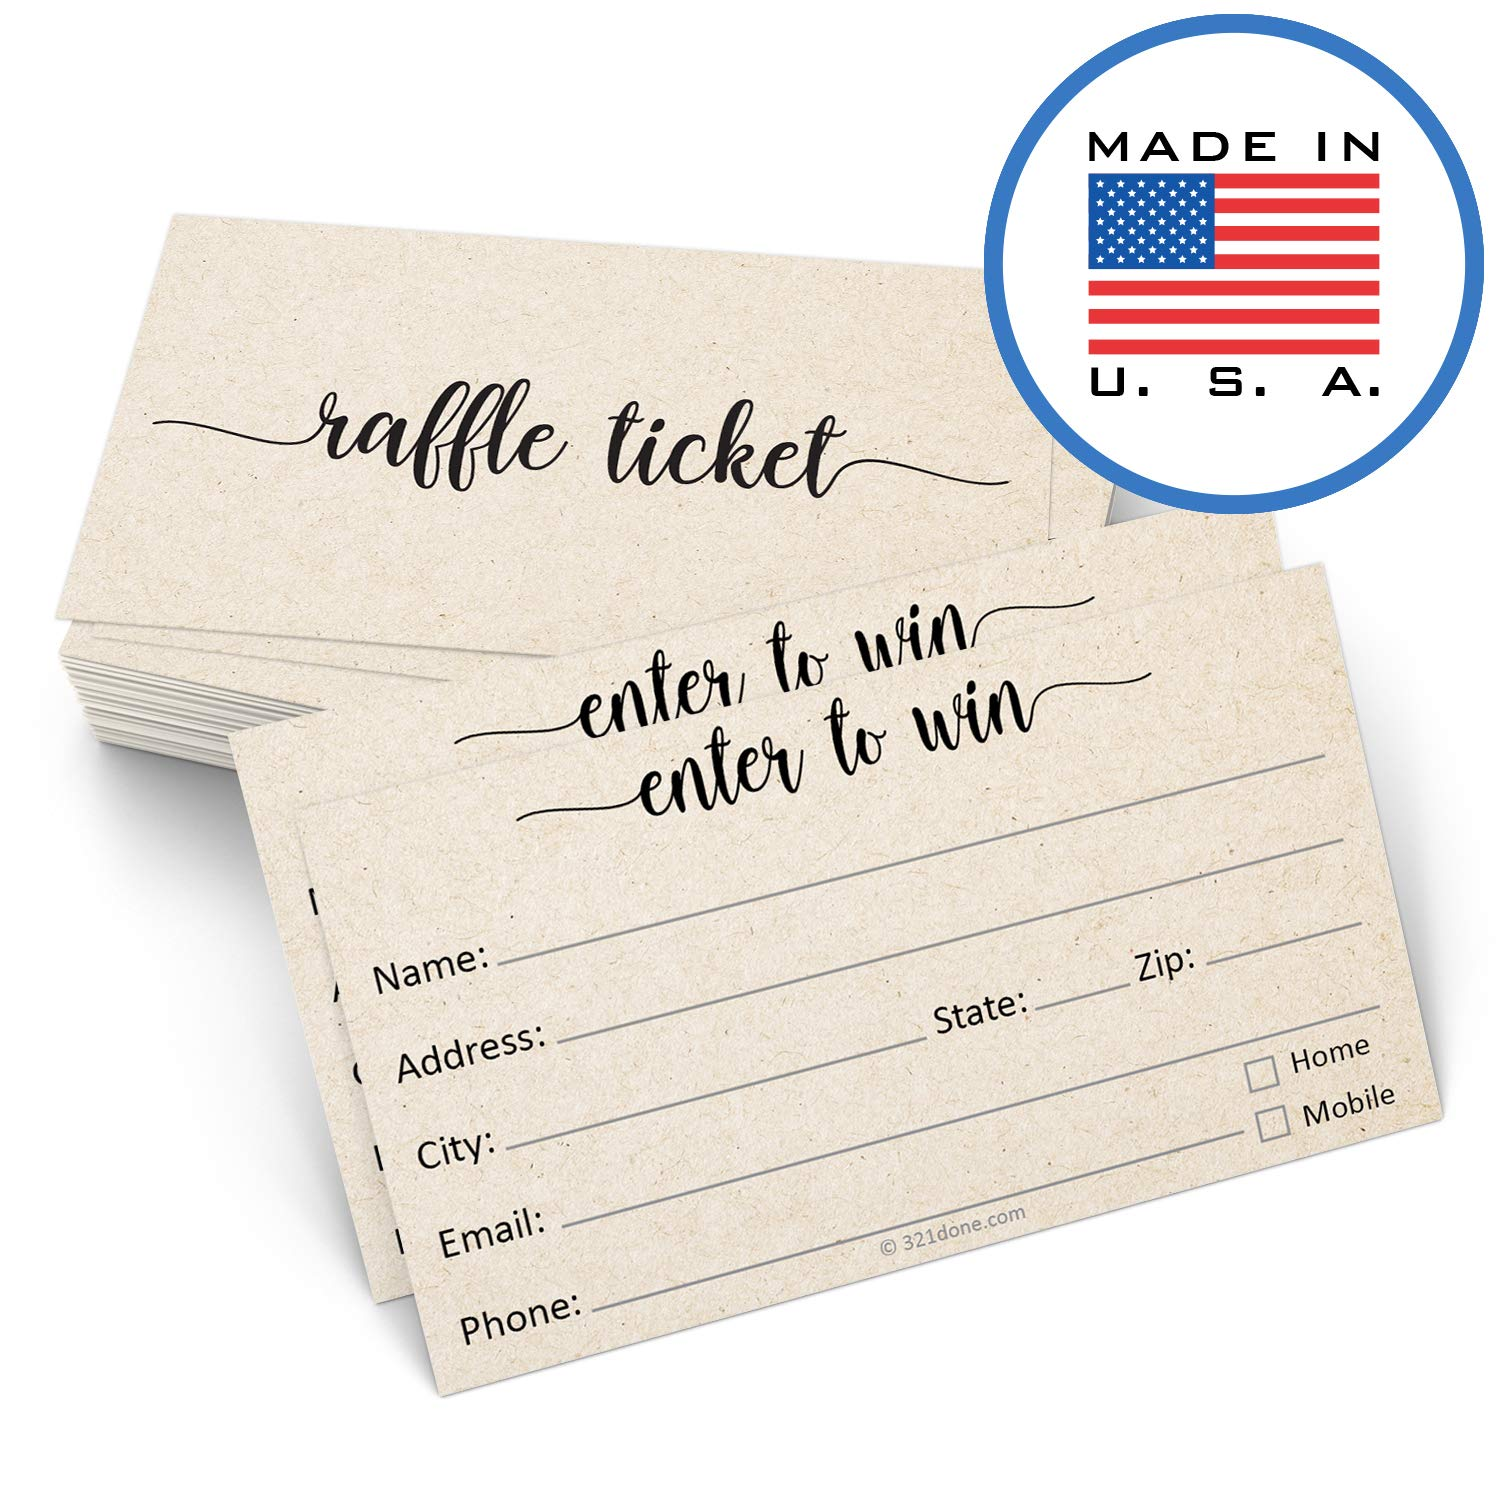 321Done Raffle Tickets with Name Address Phone Email (50 Cards) 3.5'' x 2'', Enter to Win Entry Form for Contests, Drawings, Raffles, Lotteries Prize Game, Tan Kraft Color